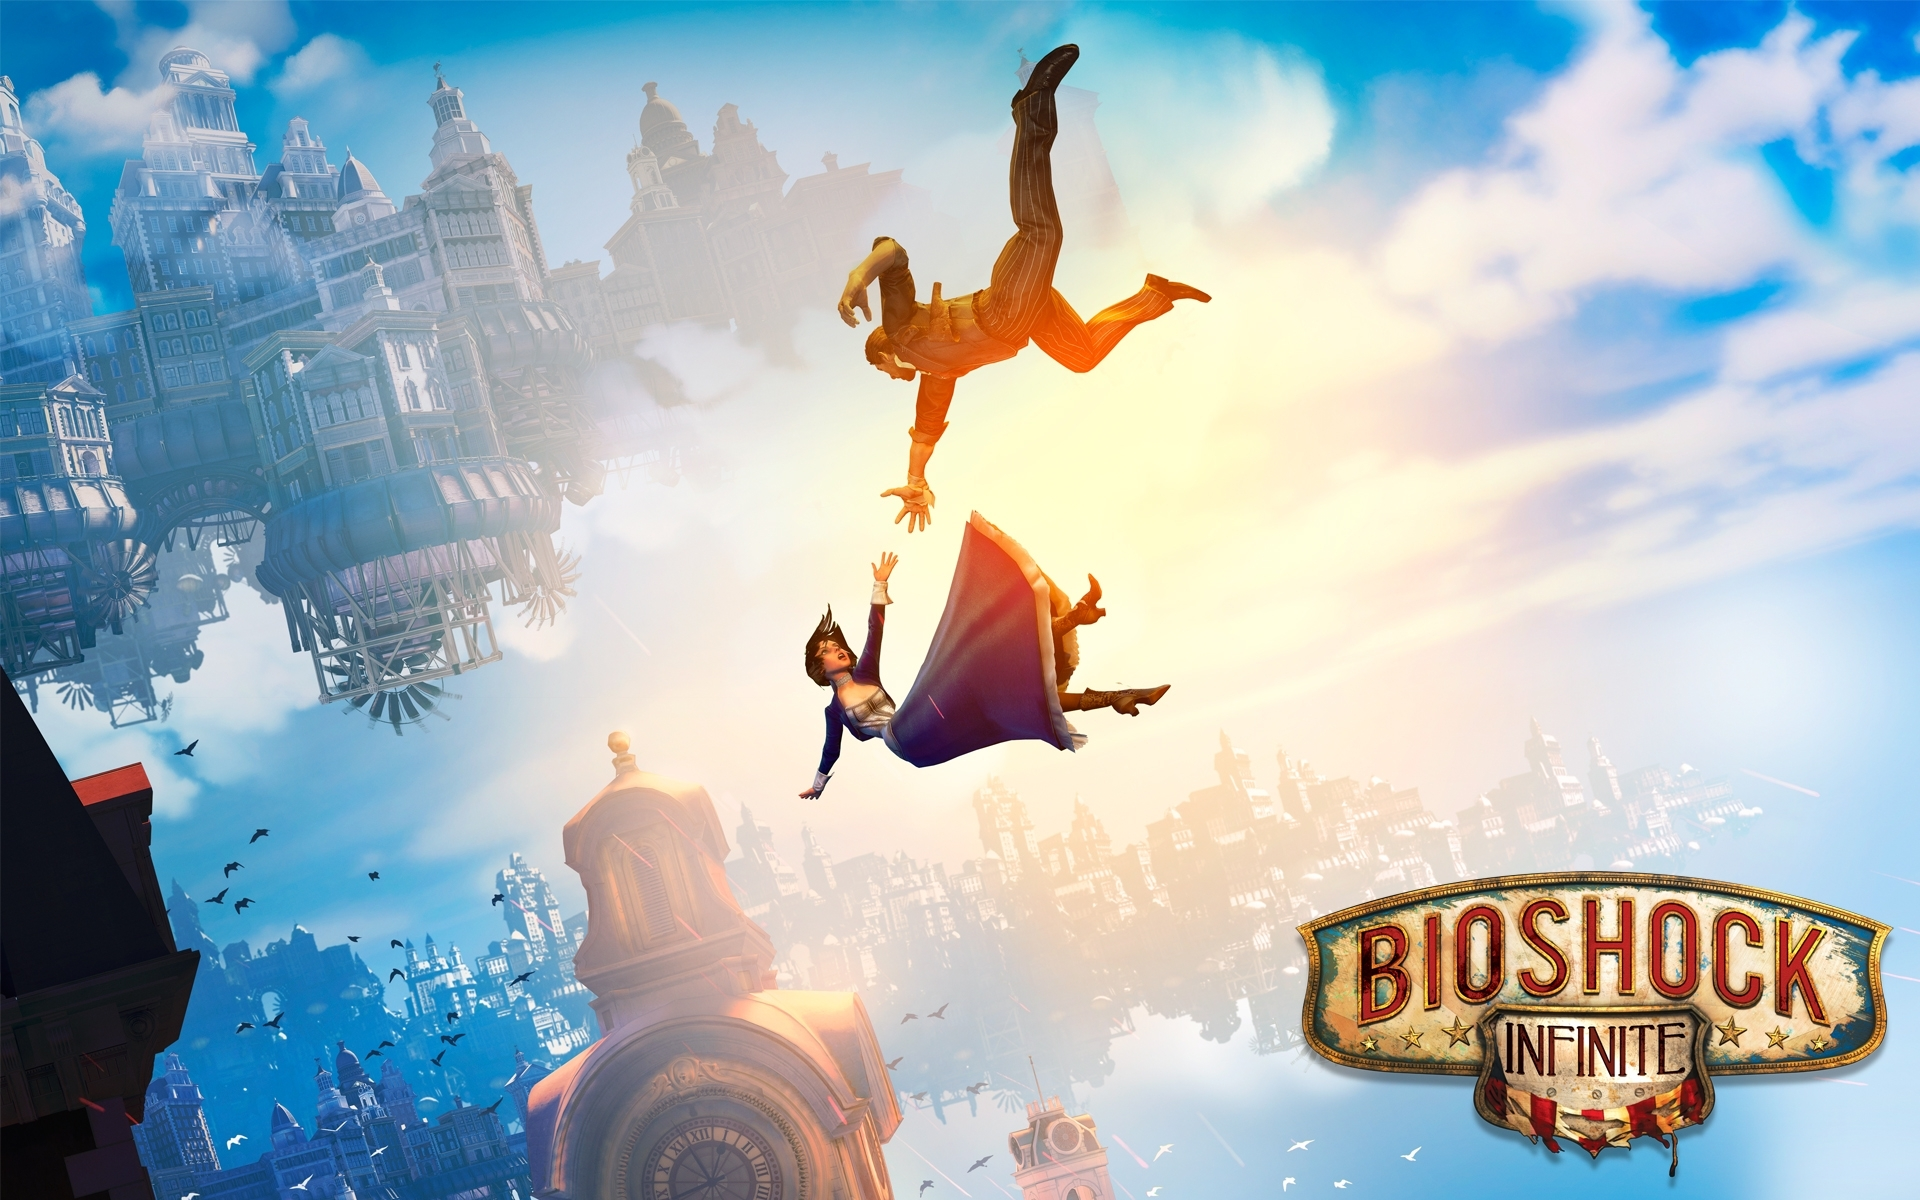 bioshock infinate images bioshock infinite hd wallpaper and